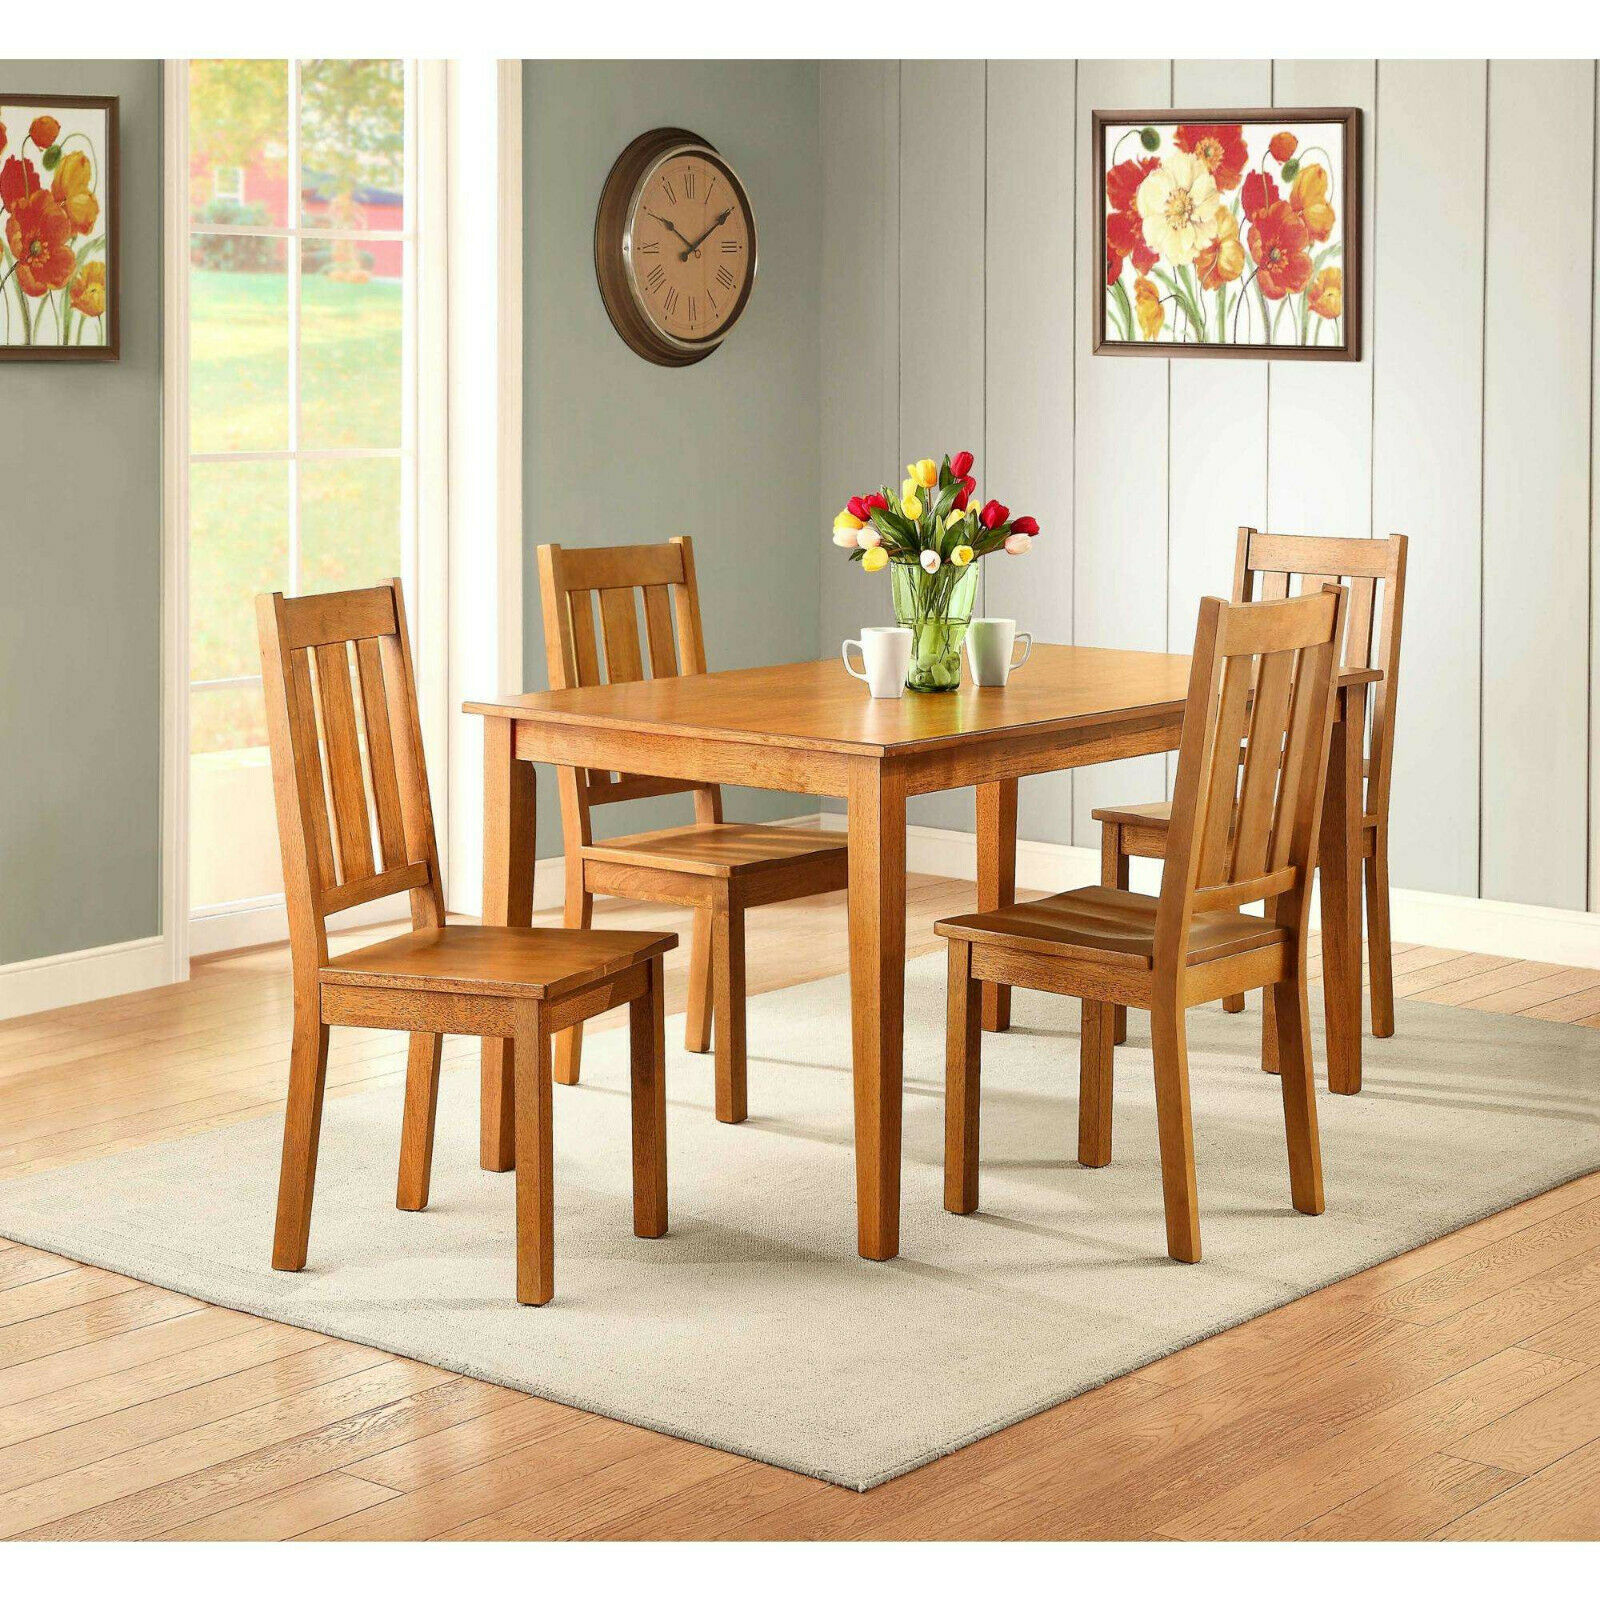 5 Piece Dining Room Table Set For 4 Farmhouse Wooden Kitchen Tables And Chairs For Sale Online Ebay